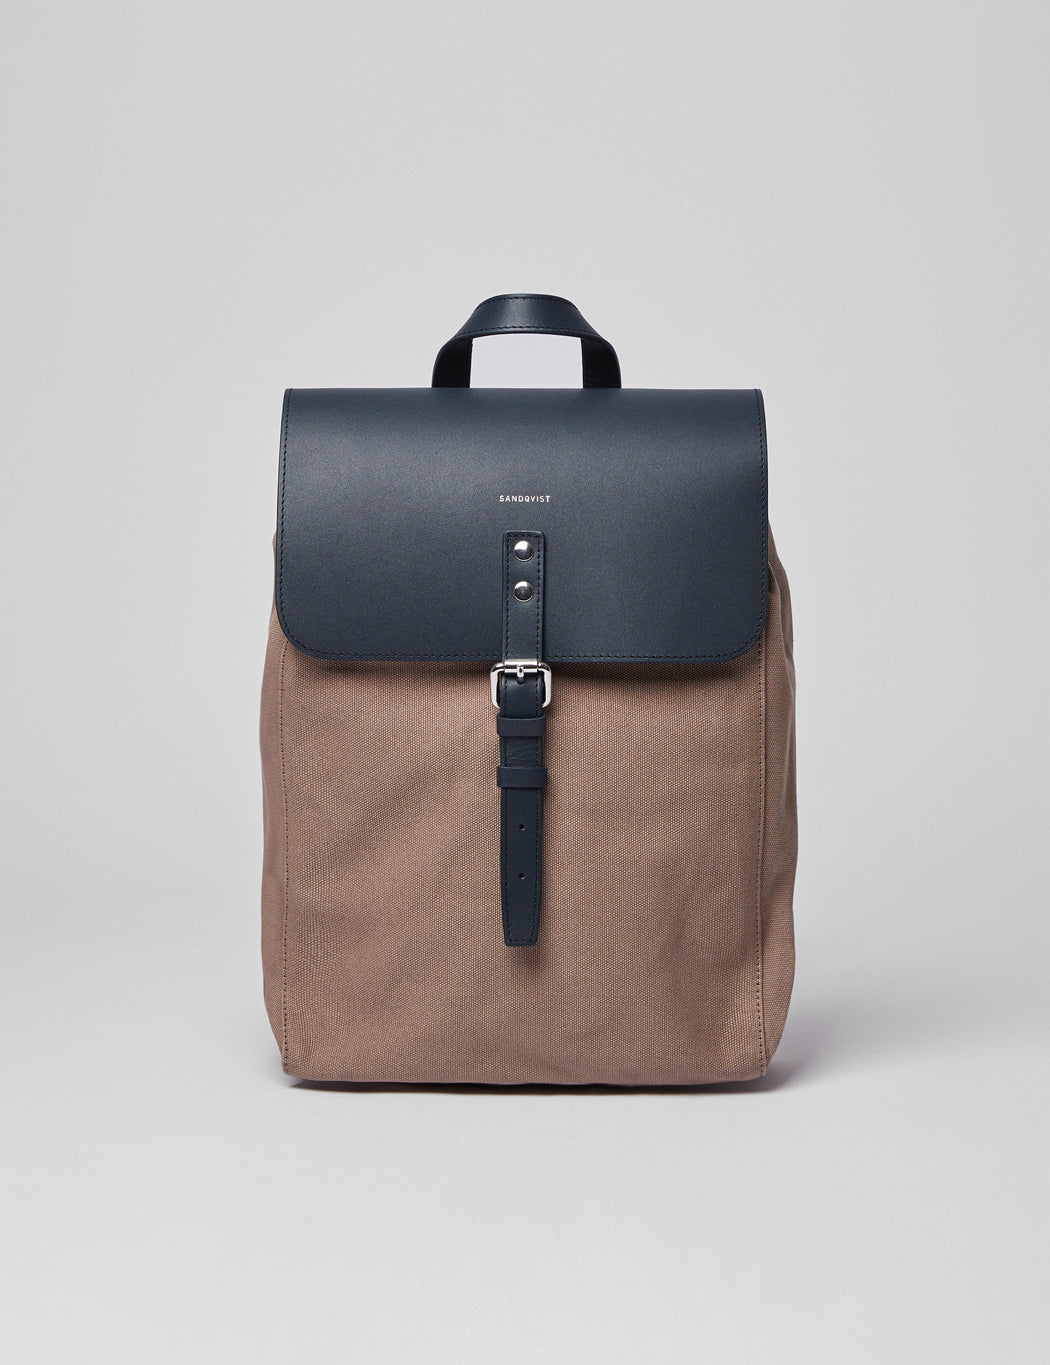 Sandqvist Alva Backpack - Earth Brown/Navy Blue